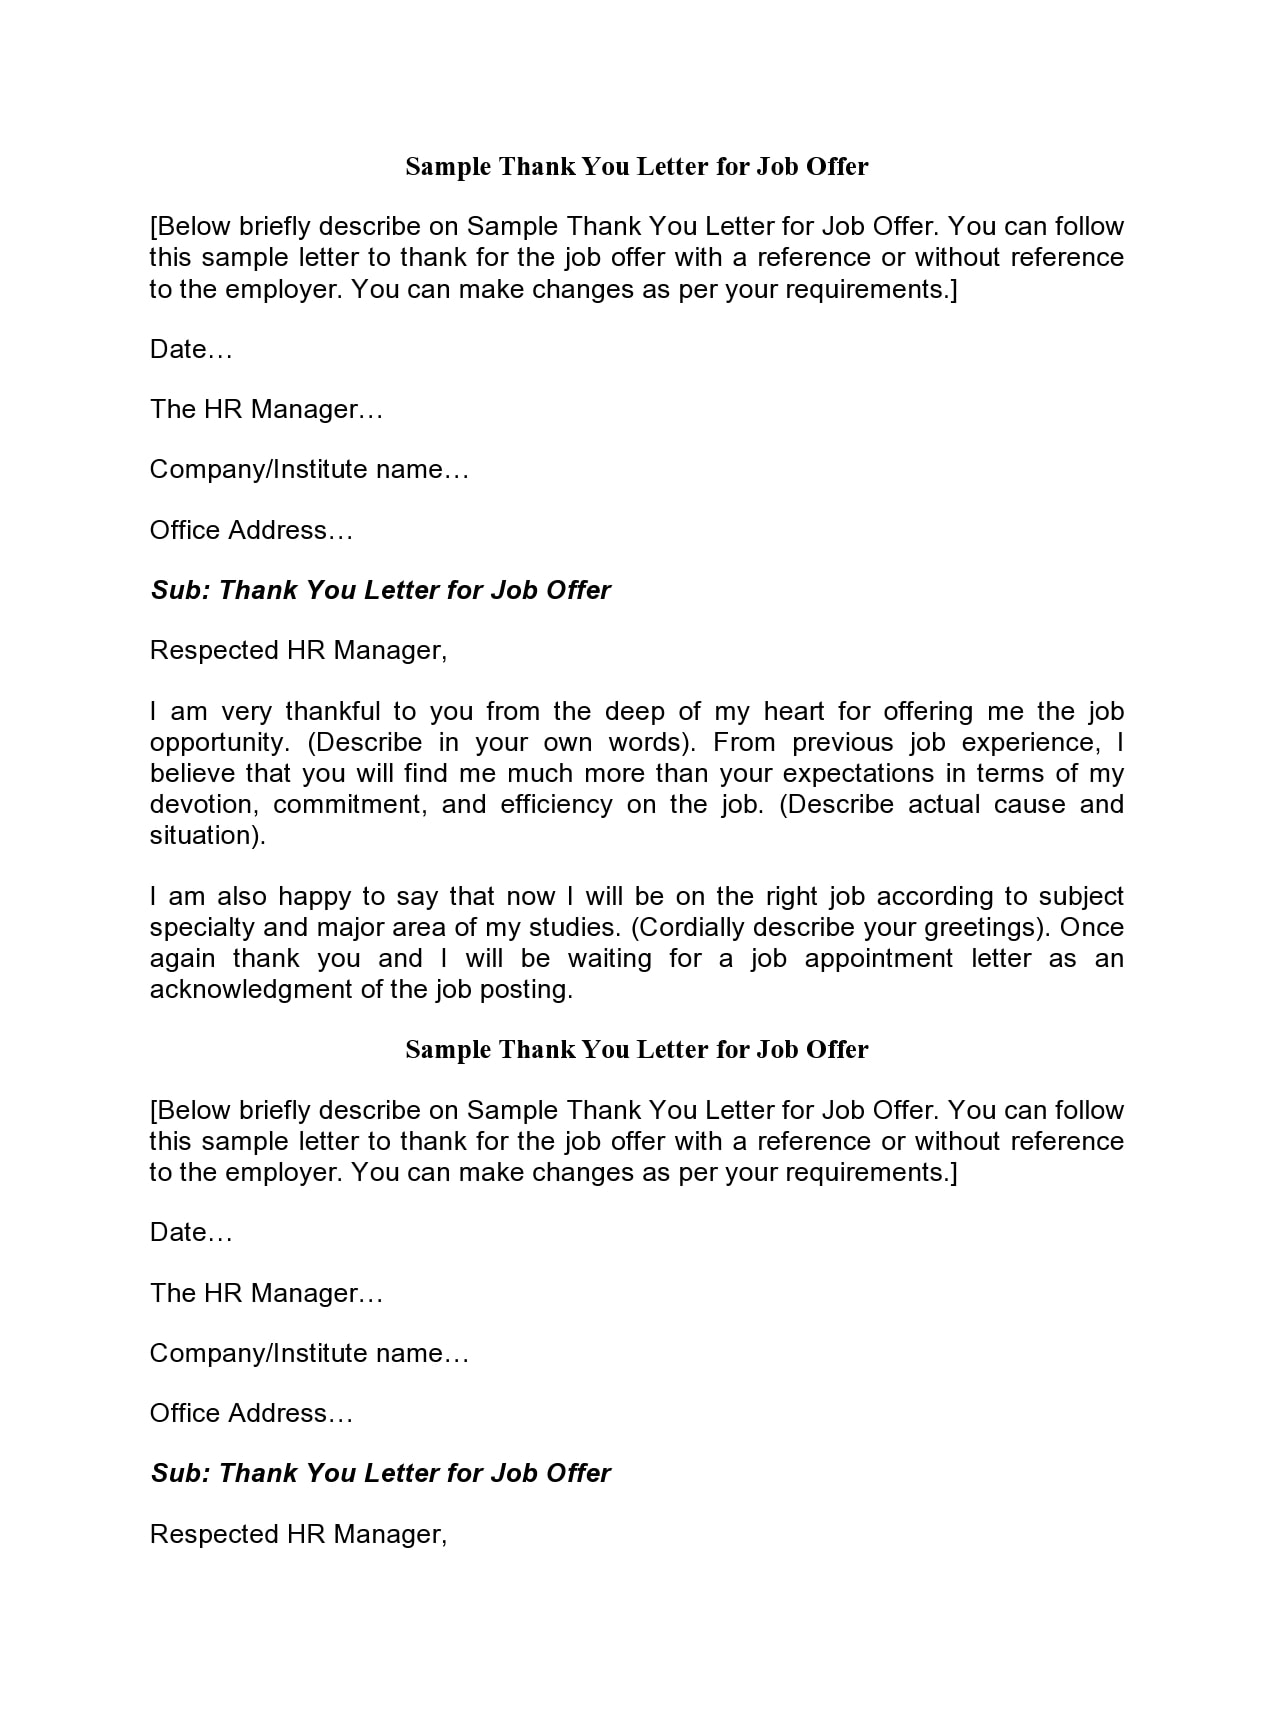 If job acceptance letter template for taking any policies of offer letter format in job word document is often include a paper for. 30 Professional Thank You Letters For Job Offer Free